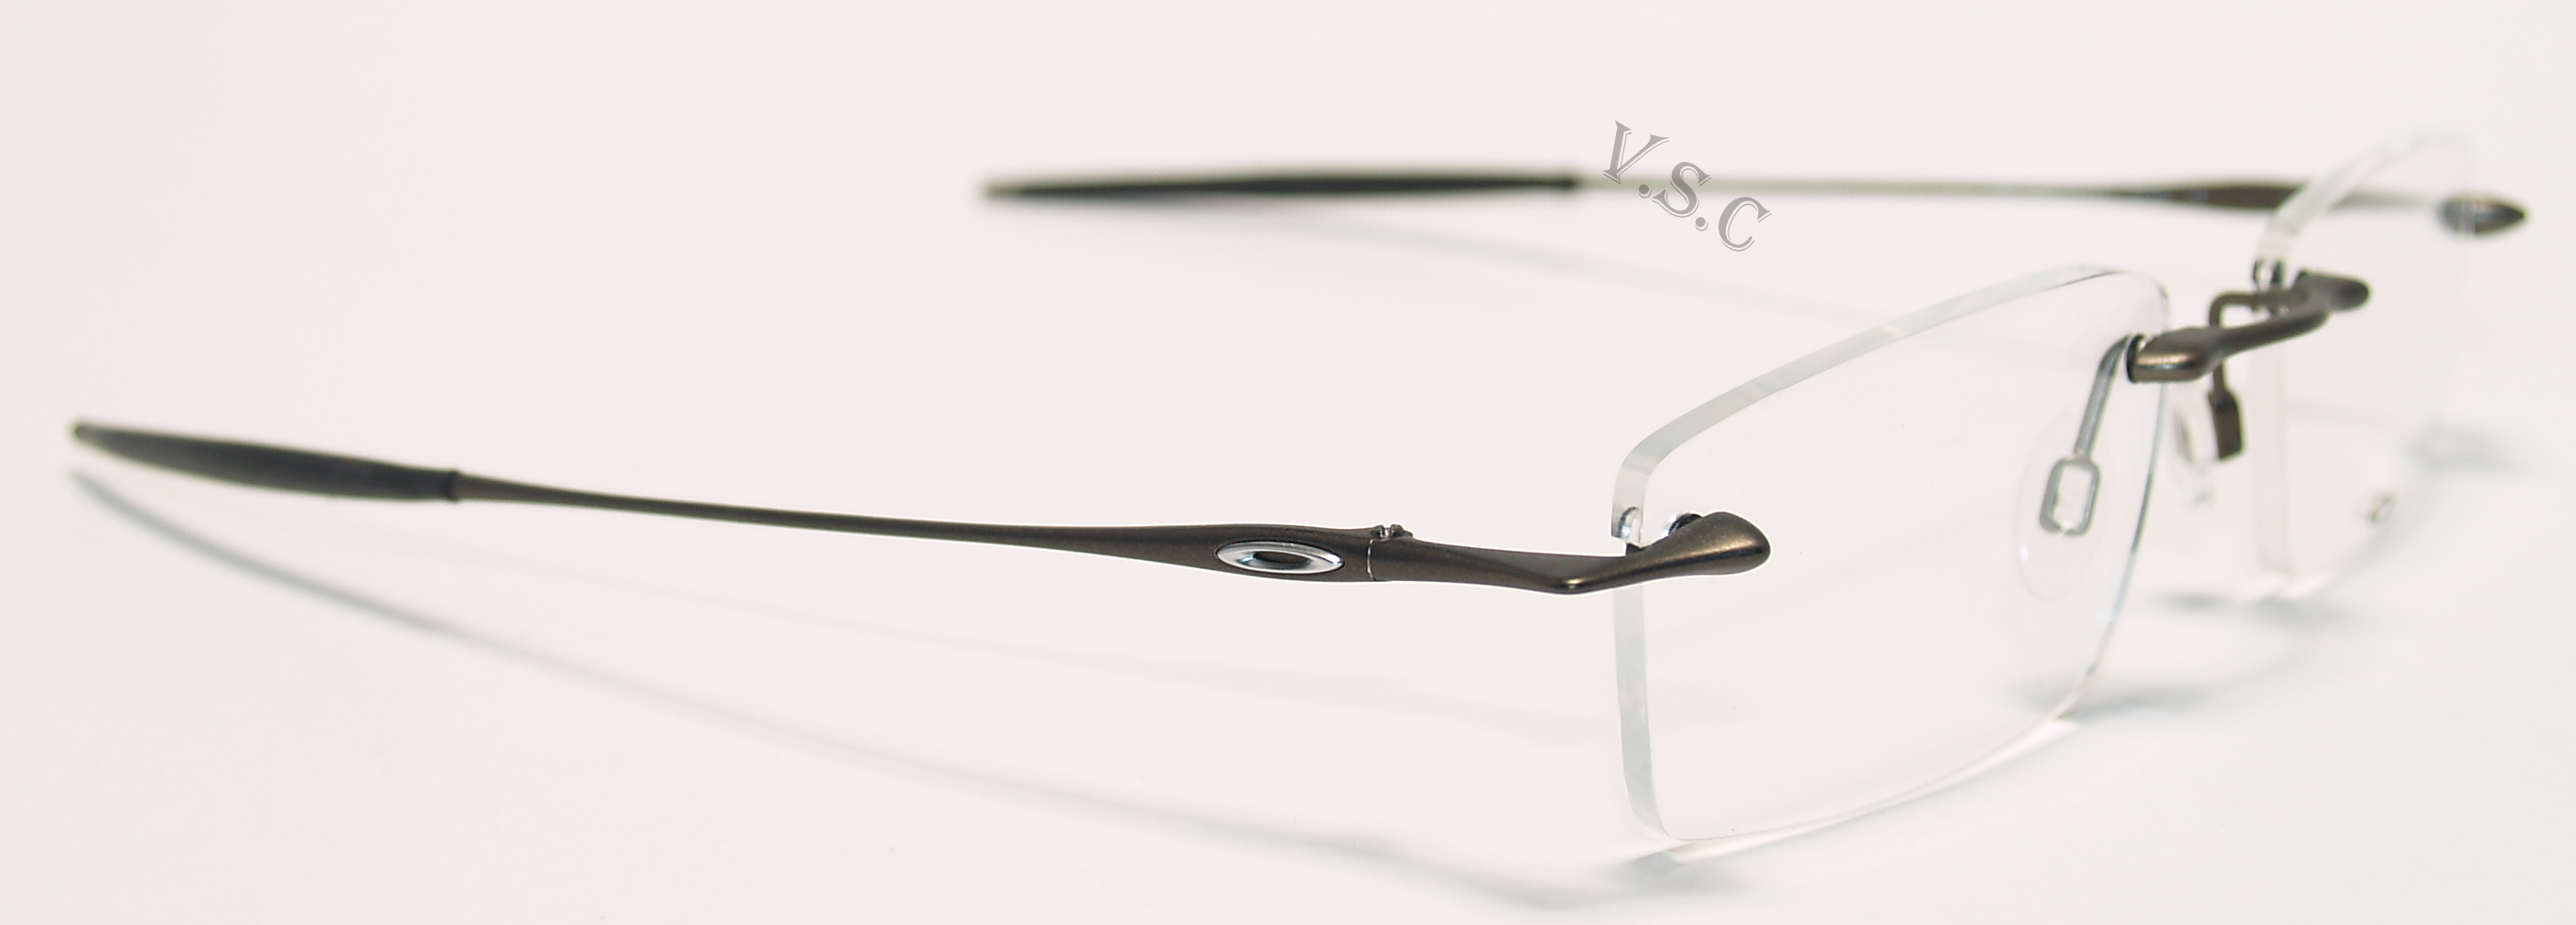 Rimless Glasses With High Prescription : OAKLEY 31THIRTEEN EYEGLASSES RIMLESS PRESCRIPTION EYE ...